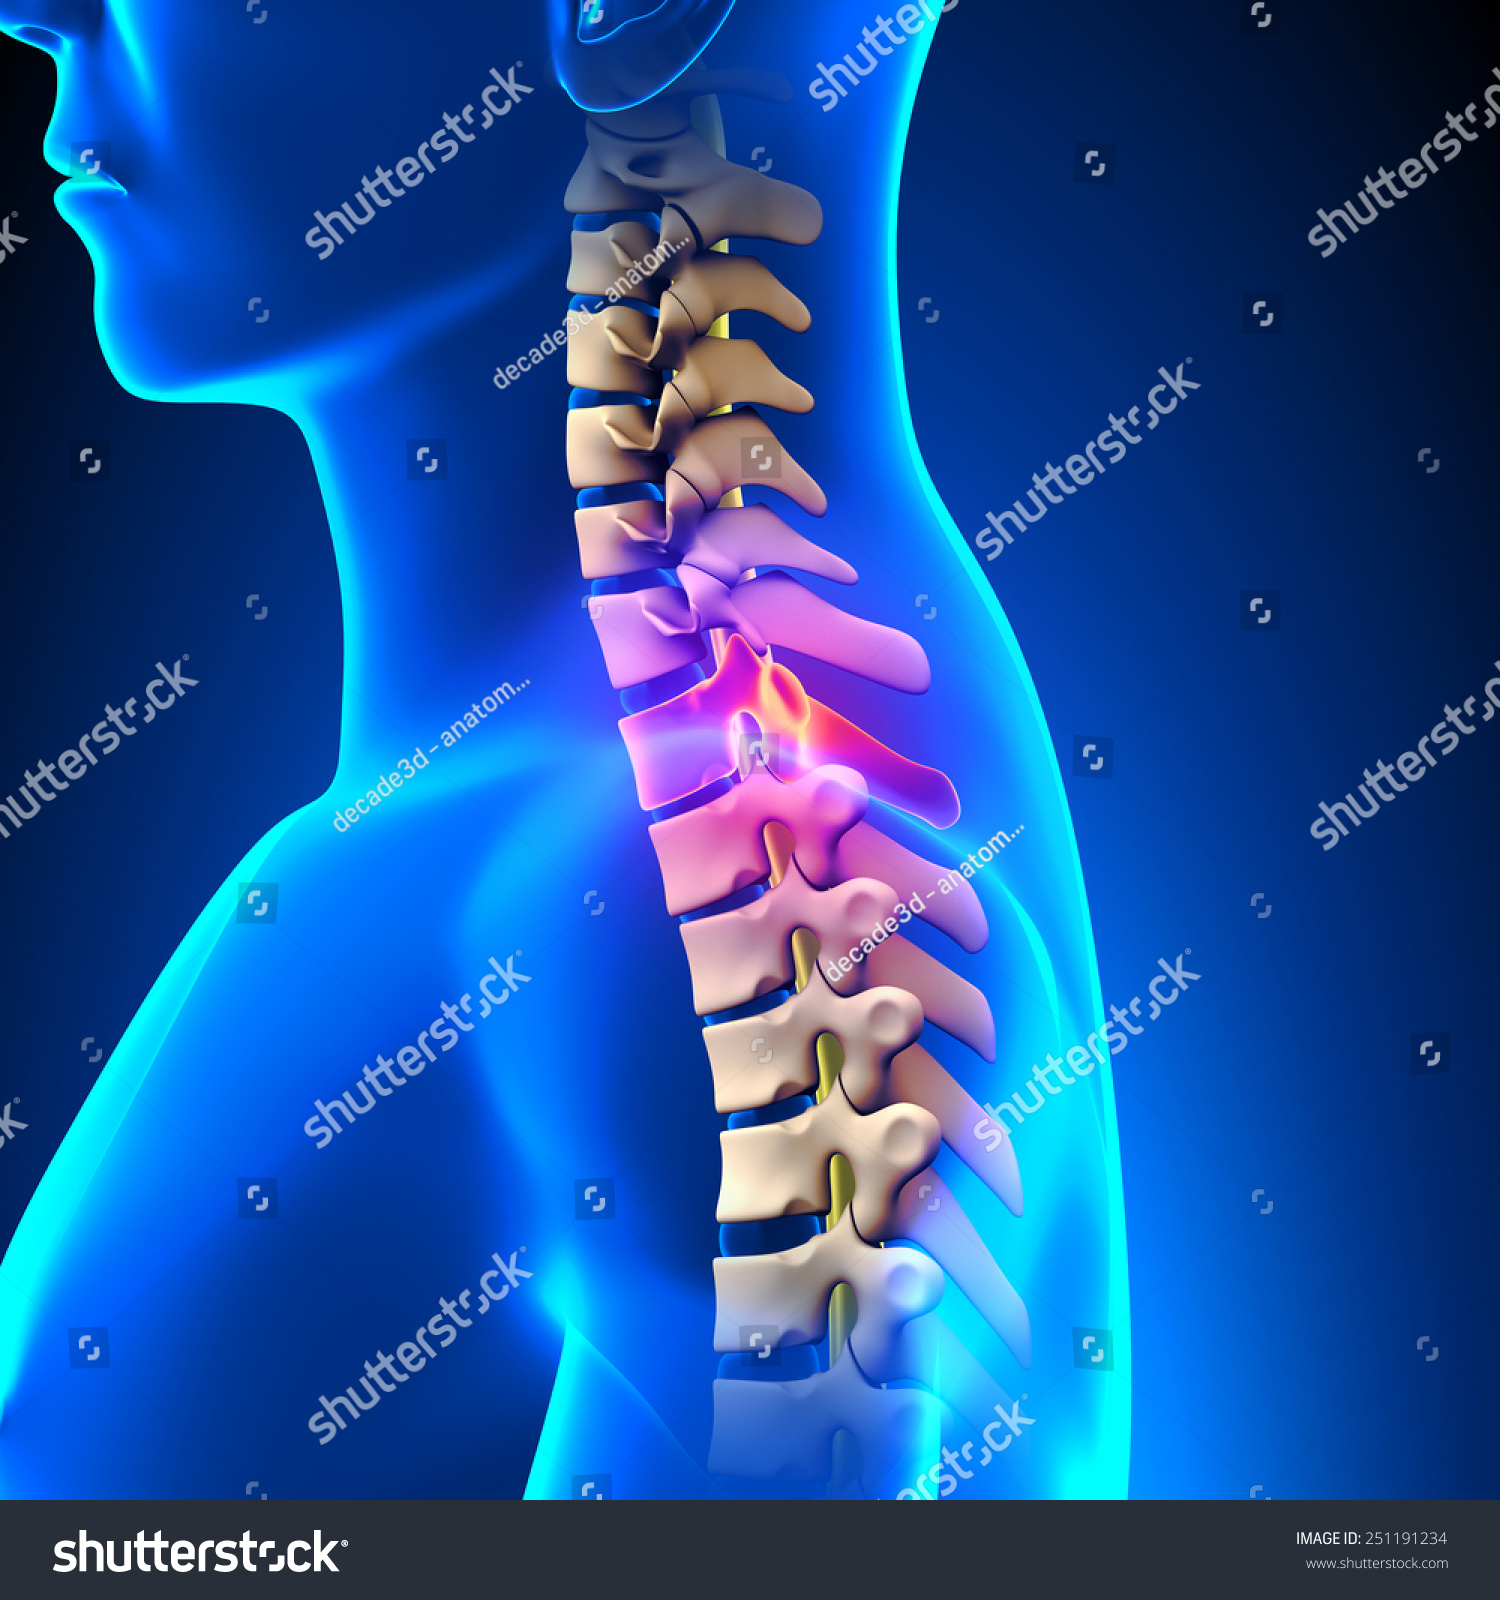 T 1 Disc Thoracic Spine Anatomy Stock Illustration 251191234